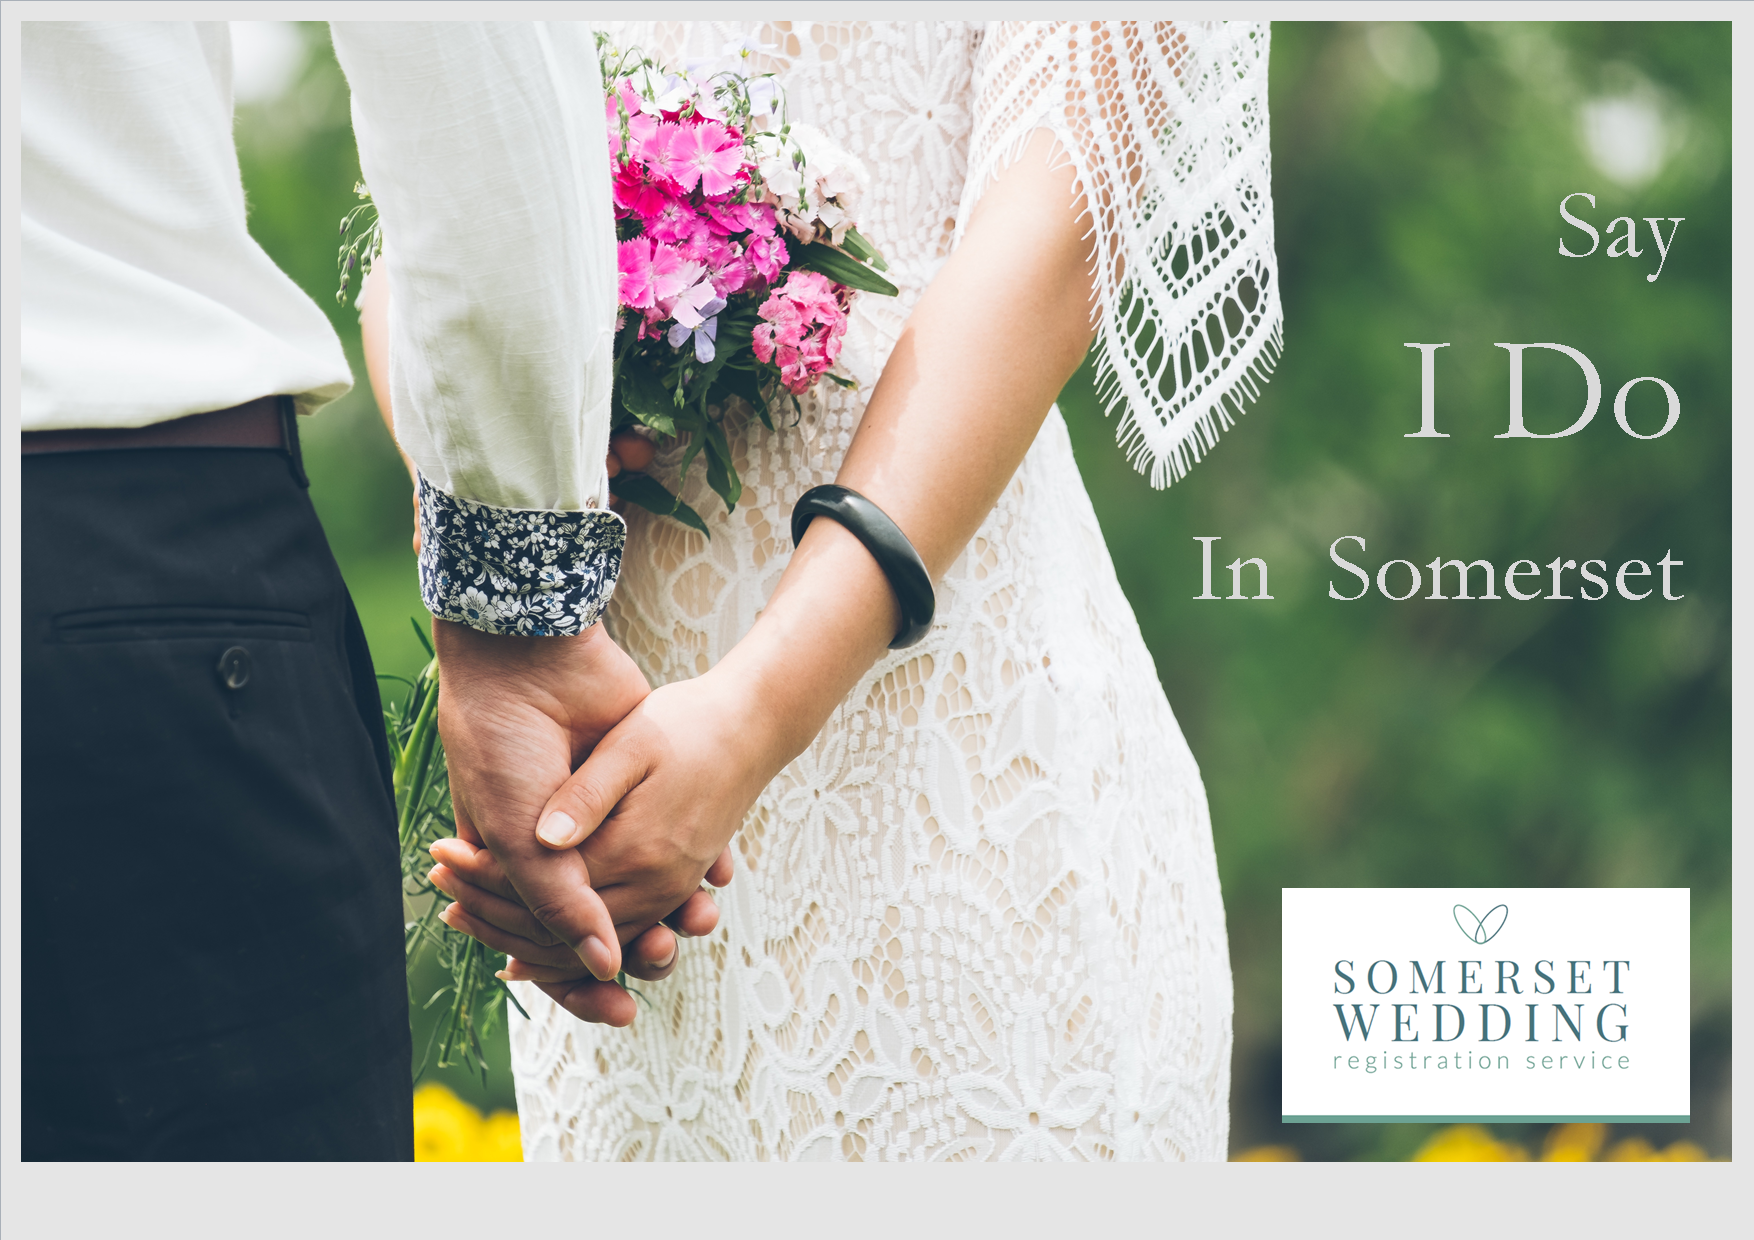 I DO: New website for Somerset weddings